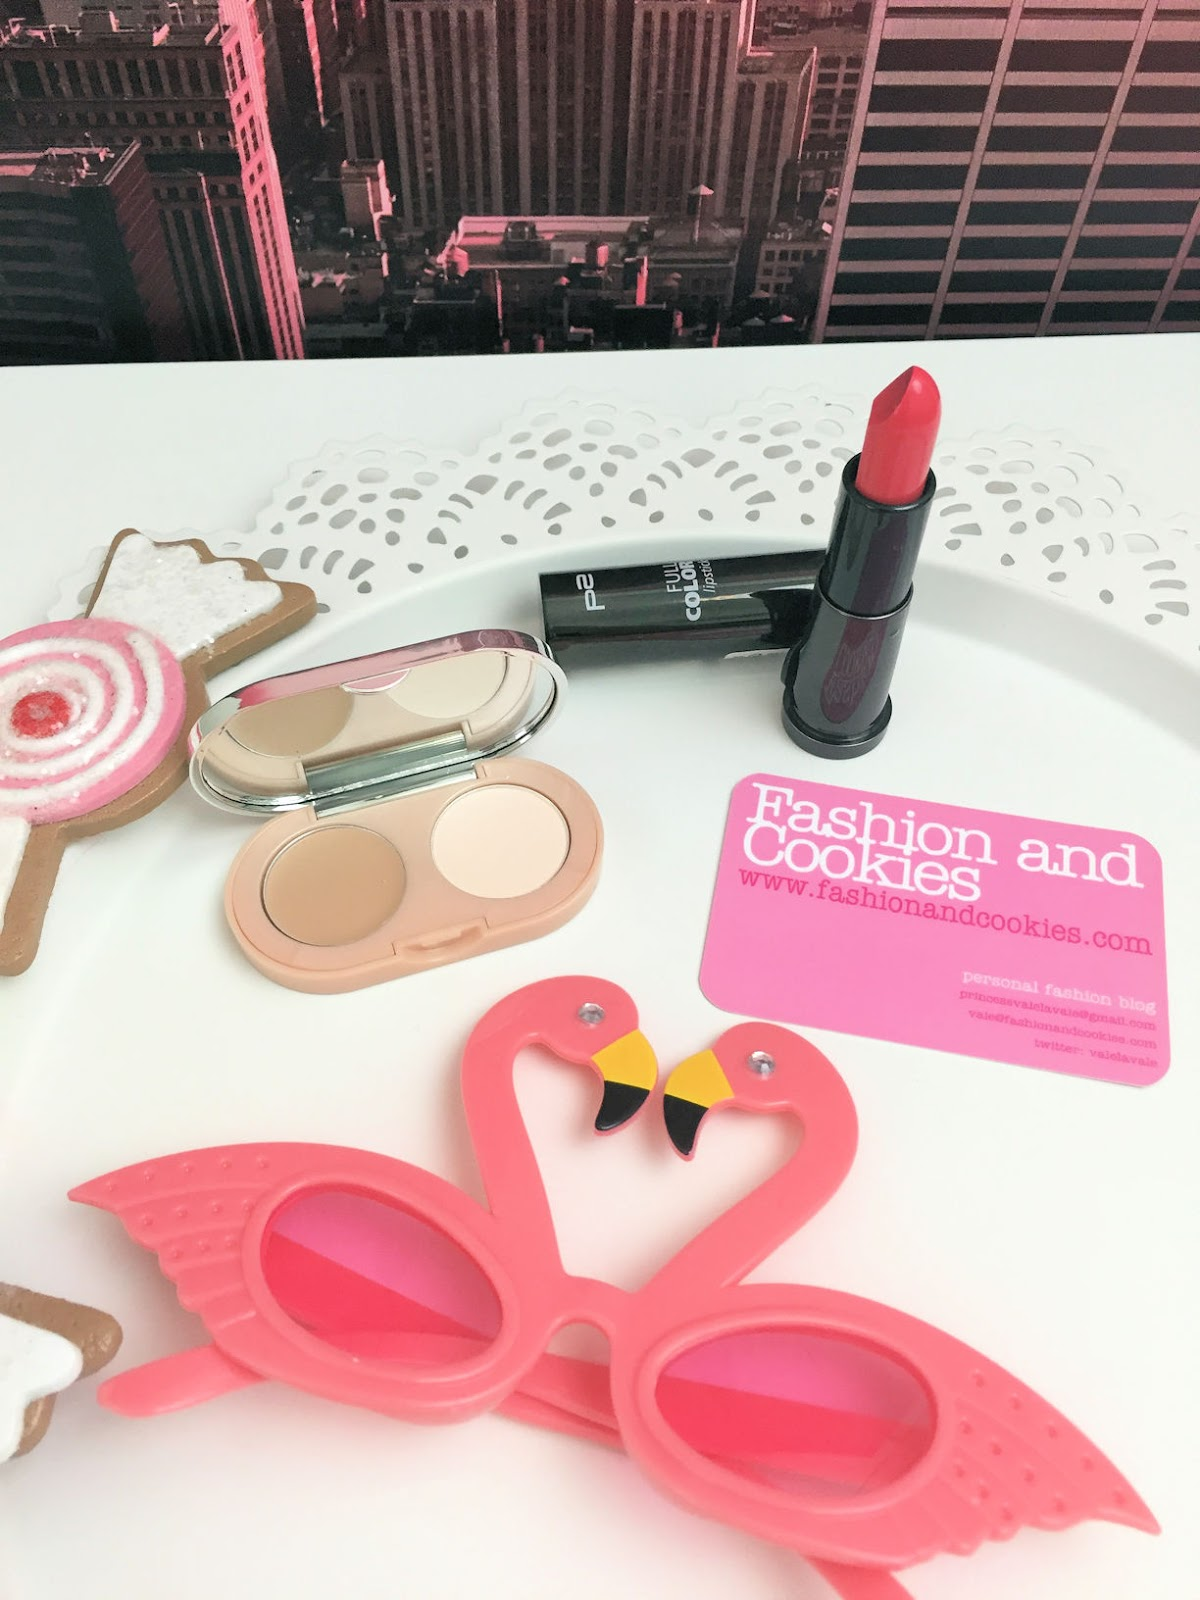 p2 Cosmetics makeup low cost review concealer kit su Fashion and Cookies beauty blog, beauty blogger